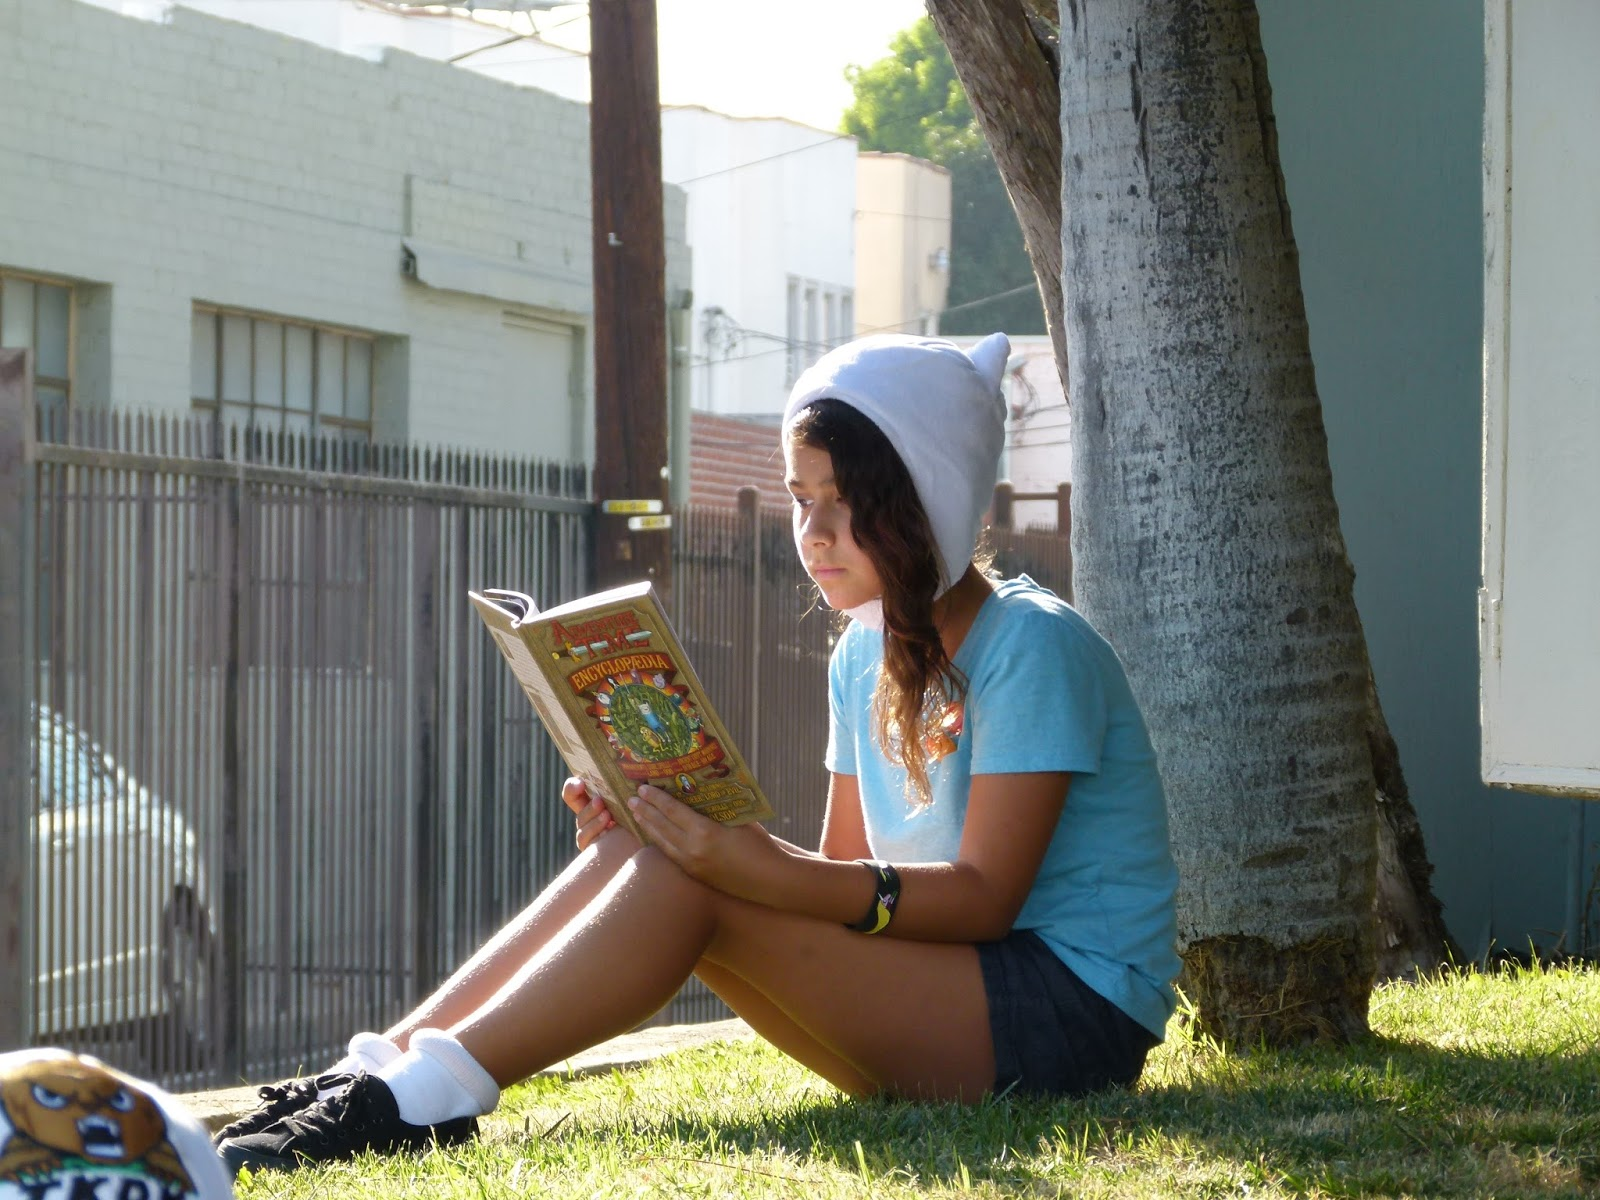 Things To Do In Los Angeles: Adventure Time Encyclopaedia